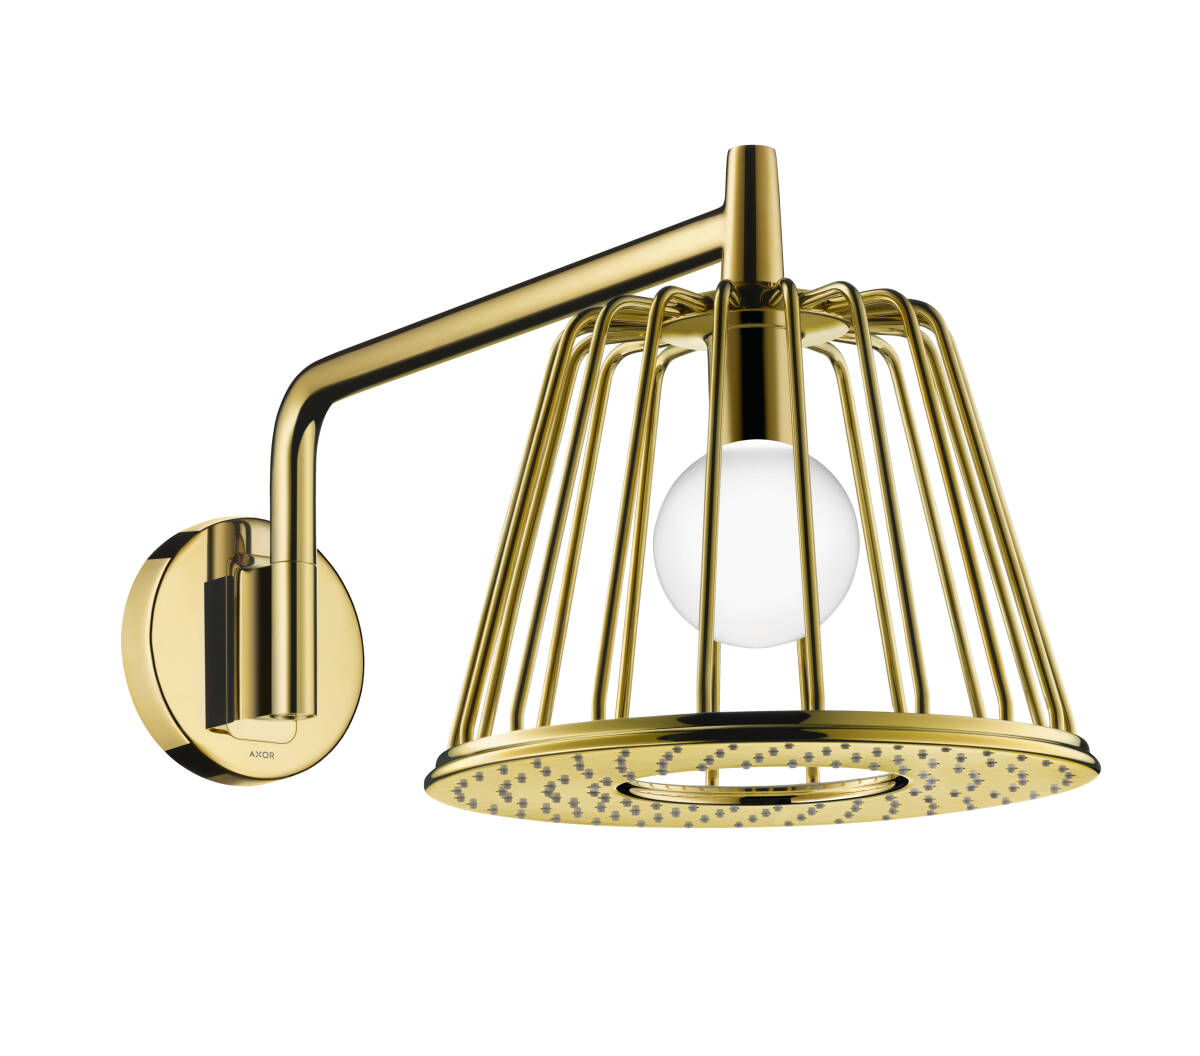 LampShower 275 1jet with shower arm, Polished Gold Optic, 26031990